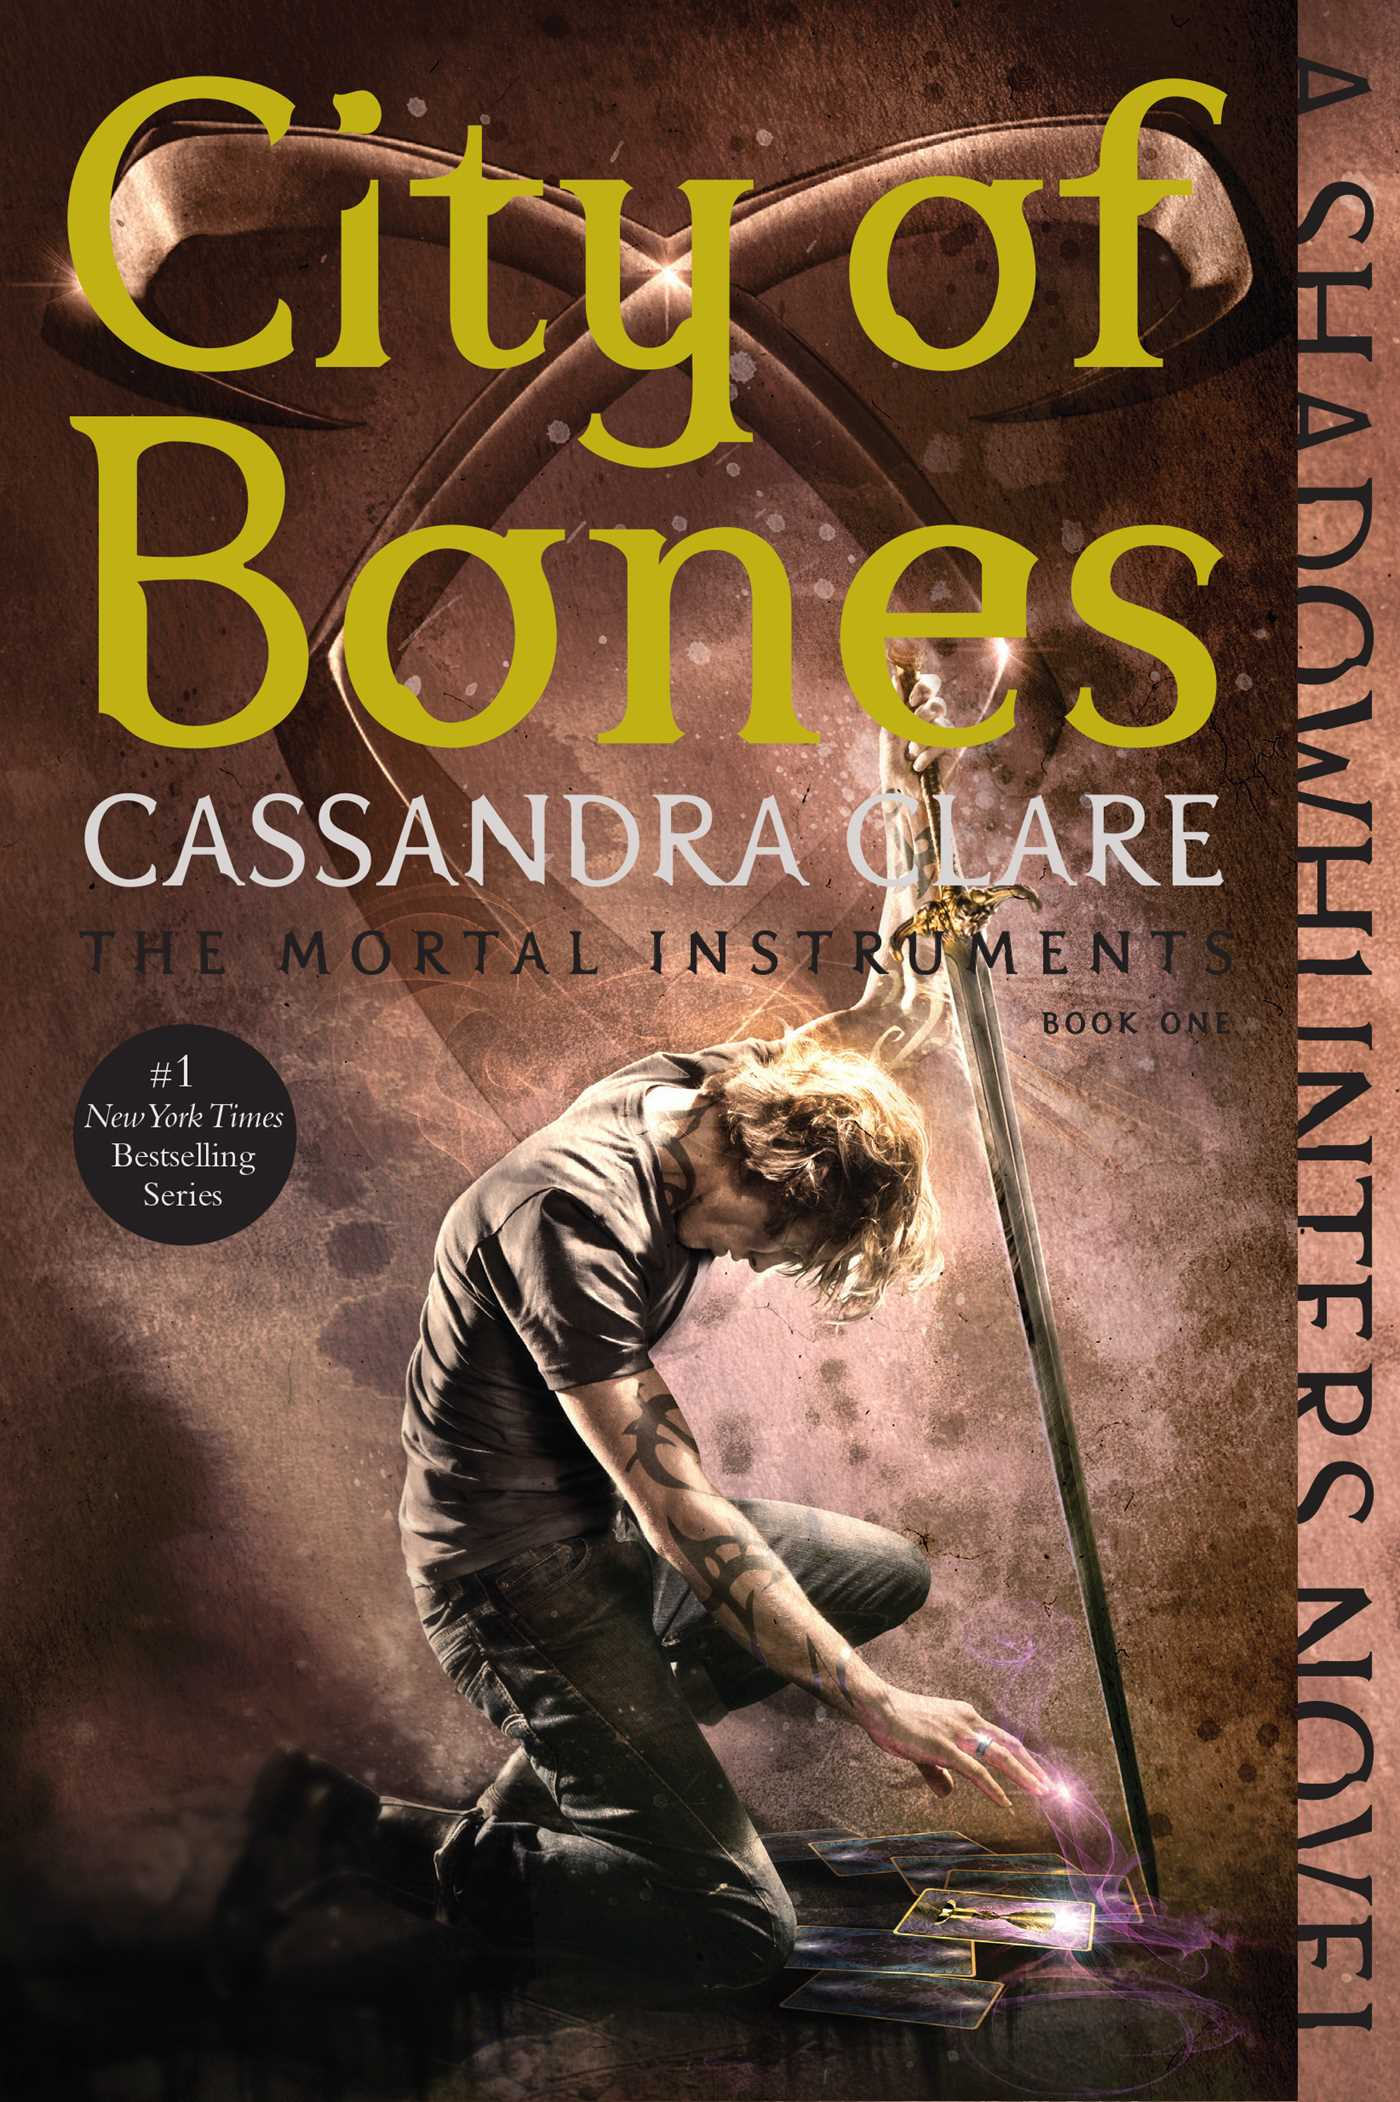 City of bones 9781416995753 hr